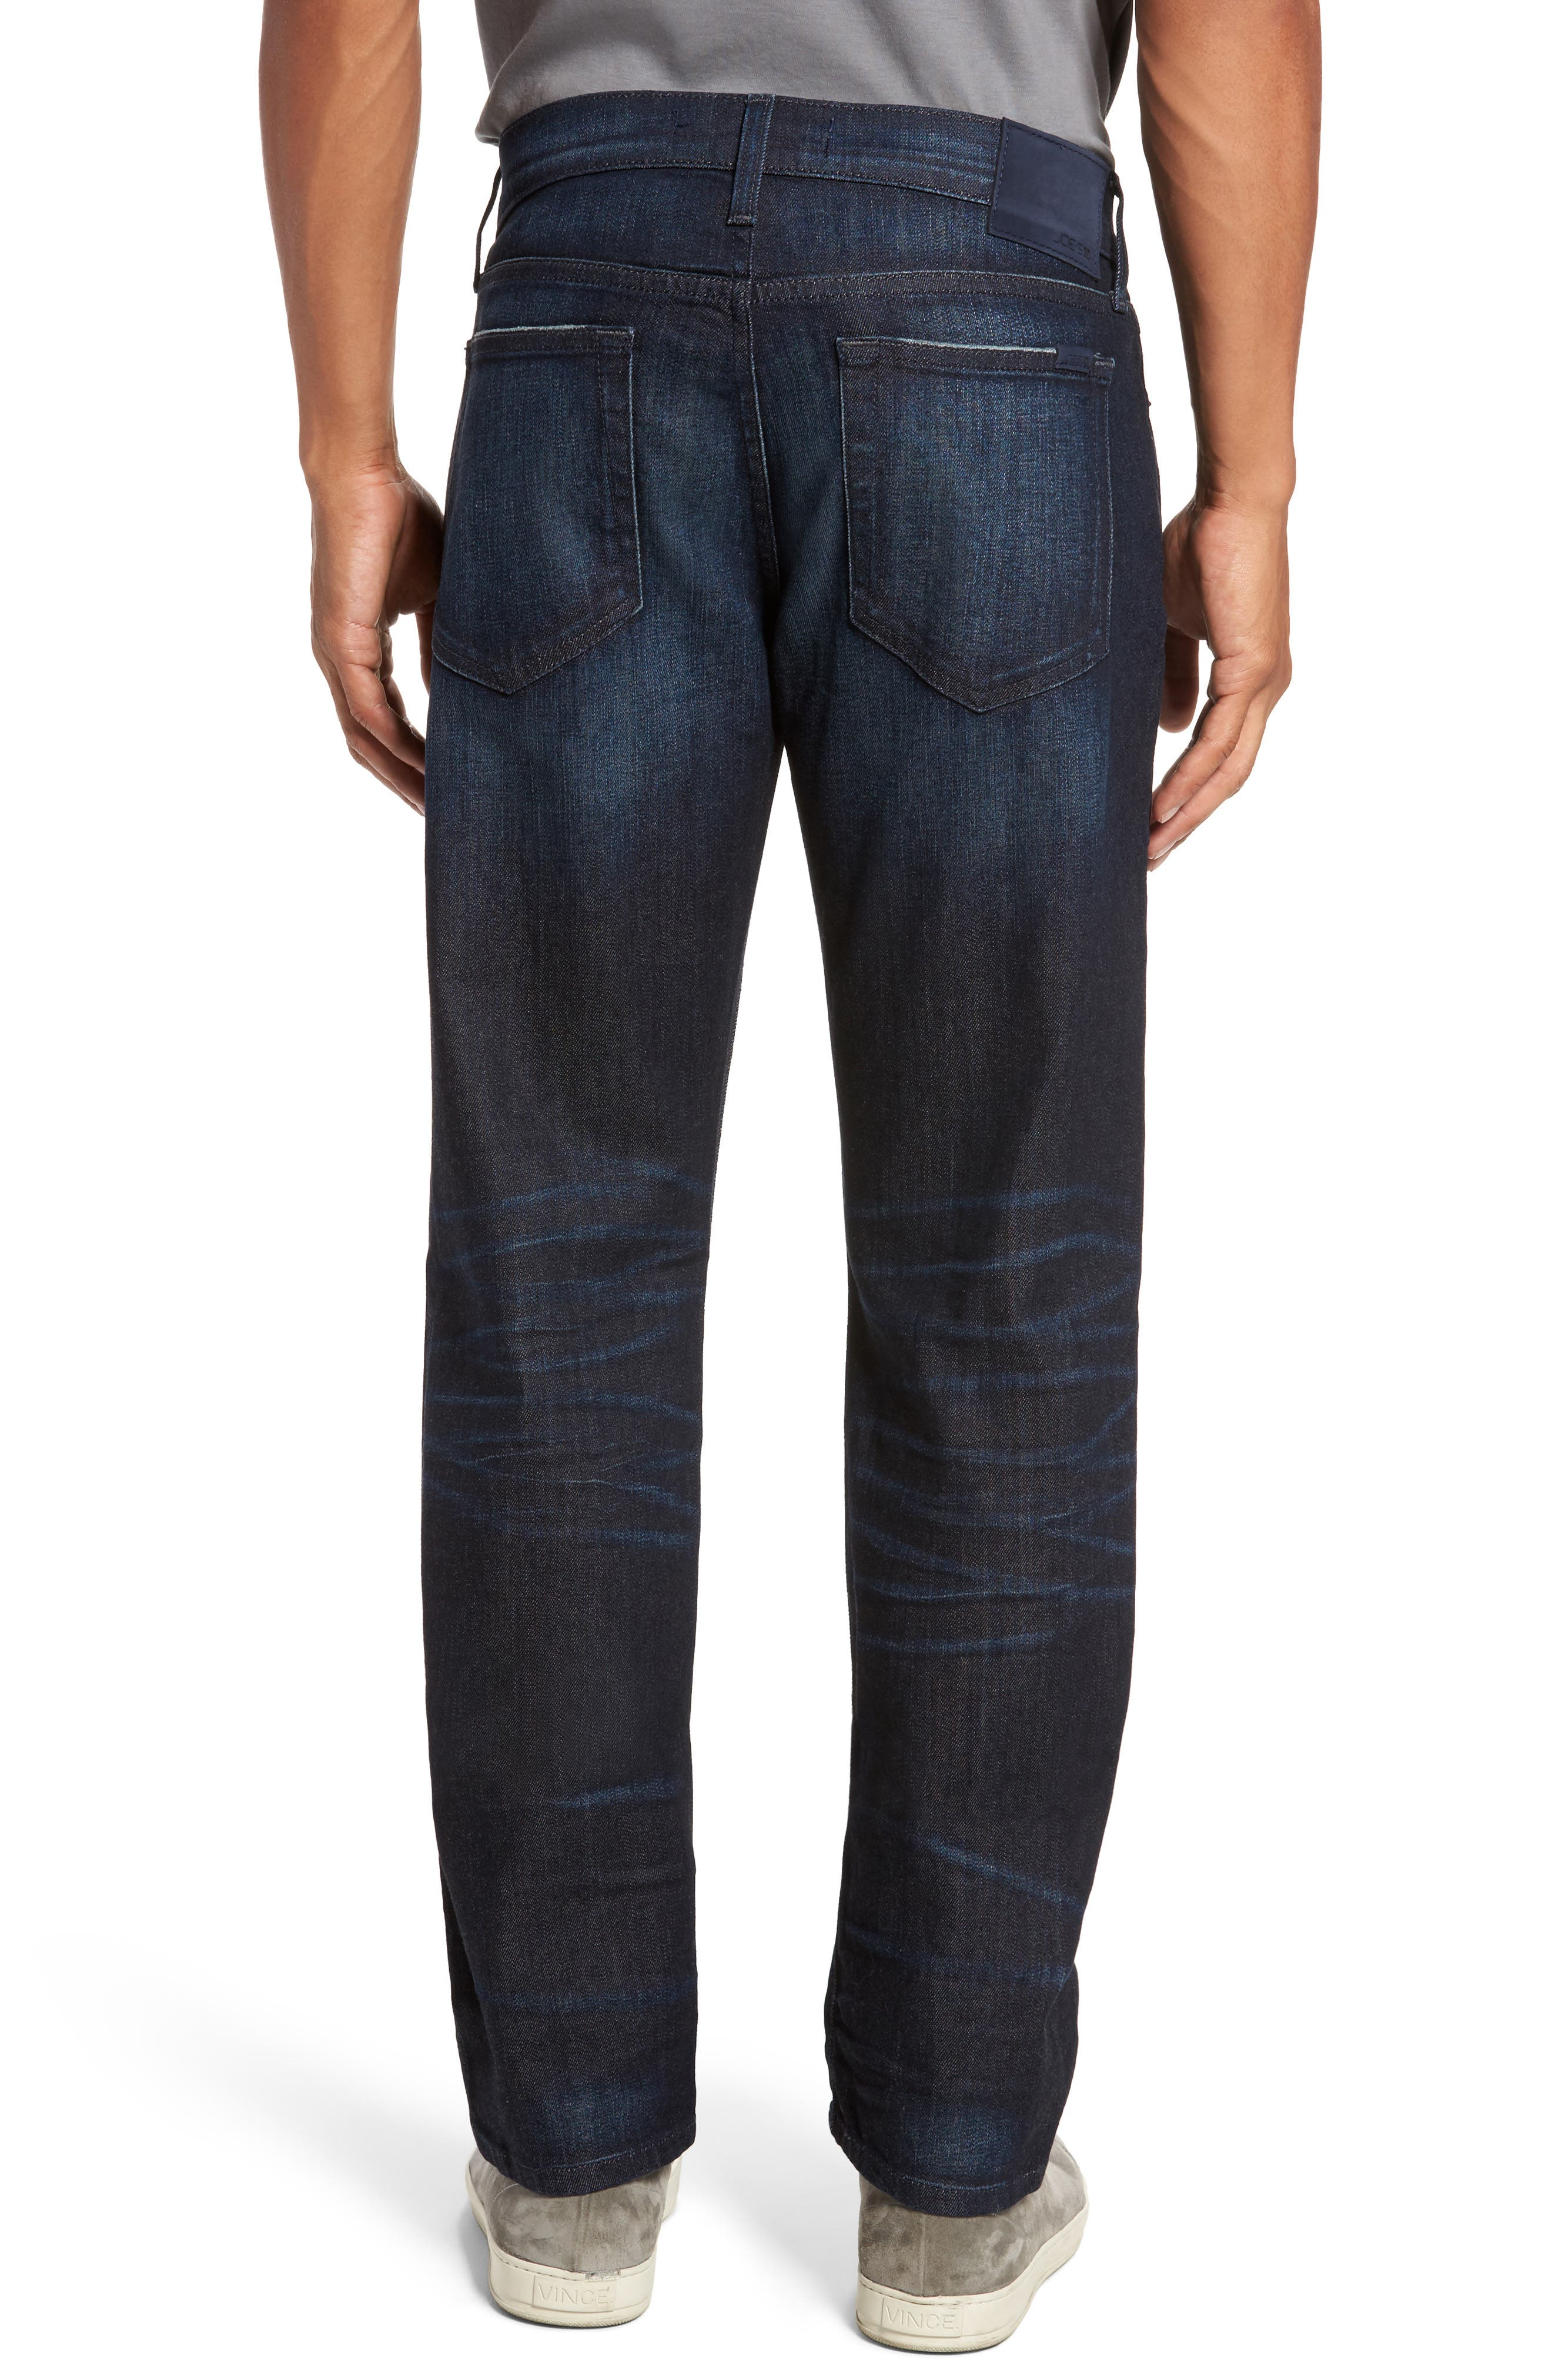 Brixton Slim Straight Fit Jeans,                             Alternate thumbnail 2, color,                             Maag